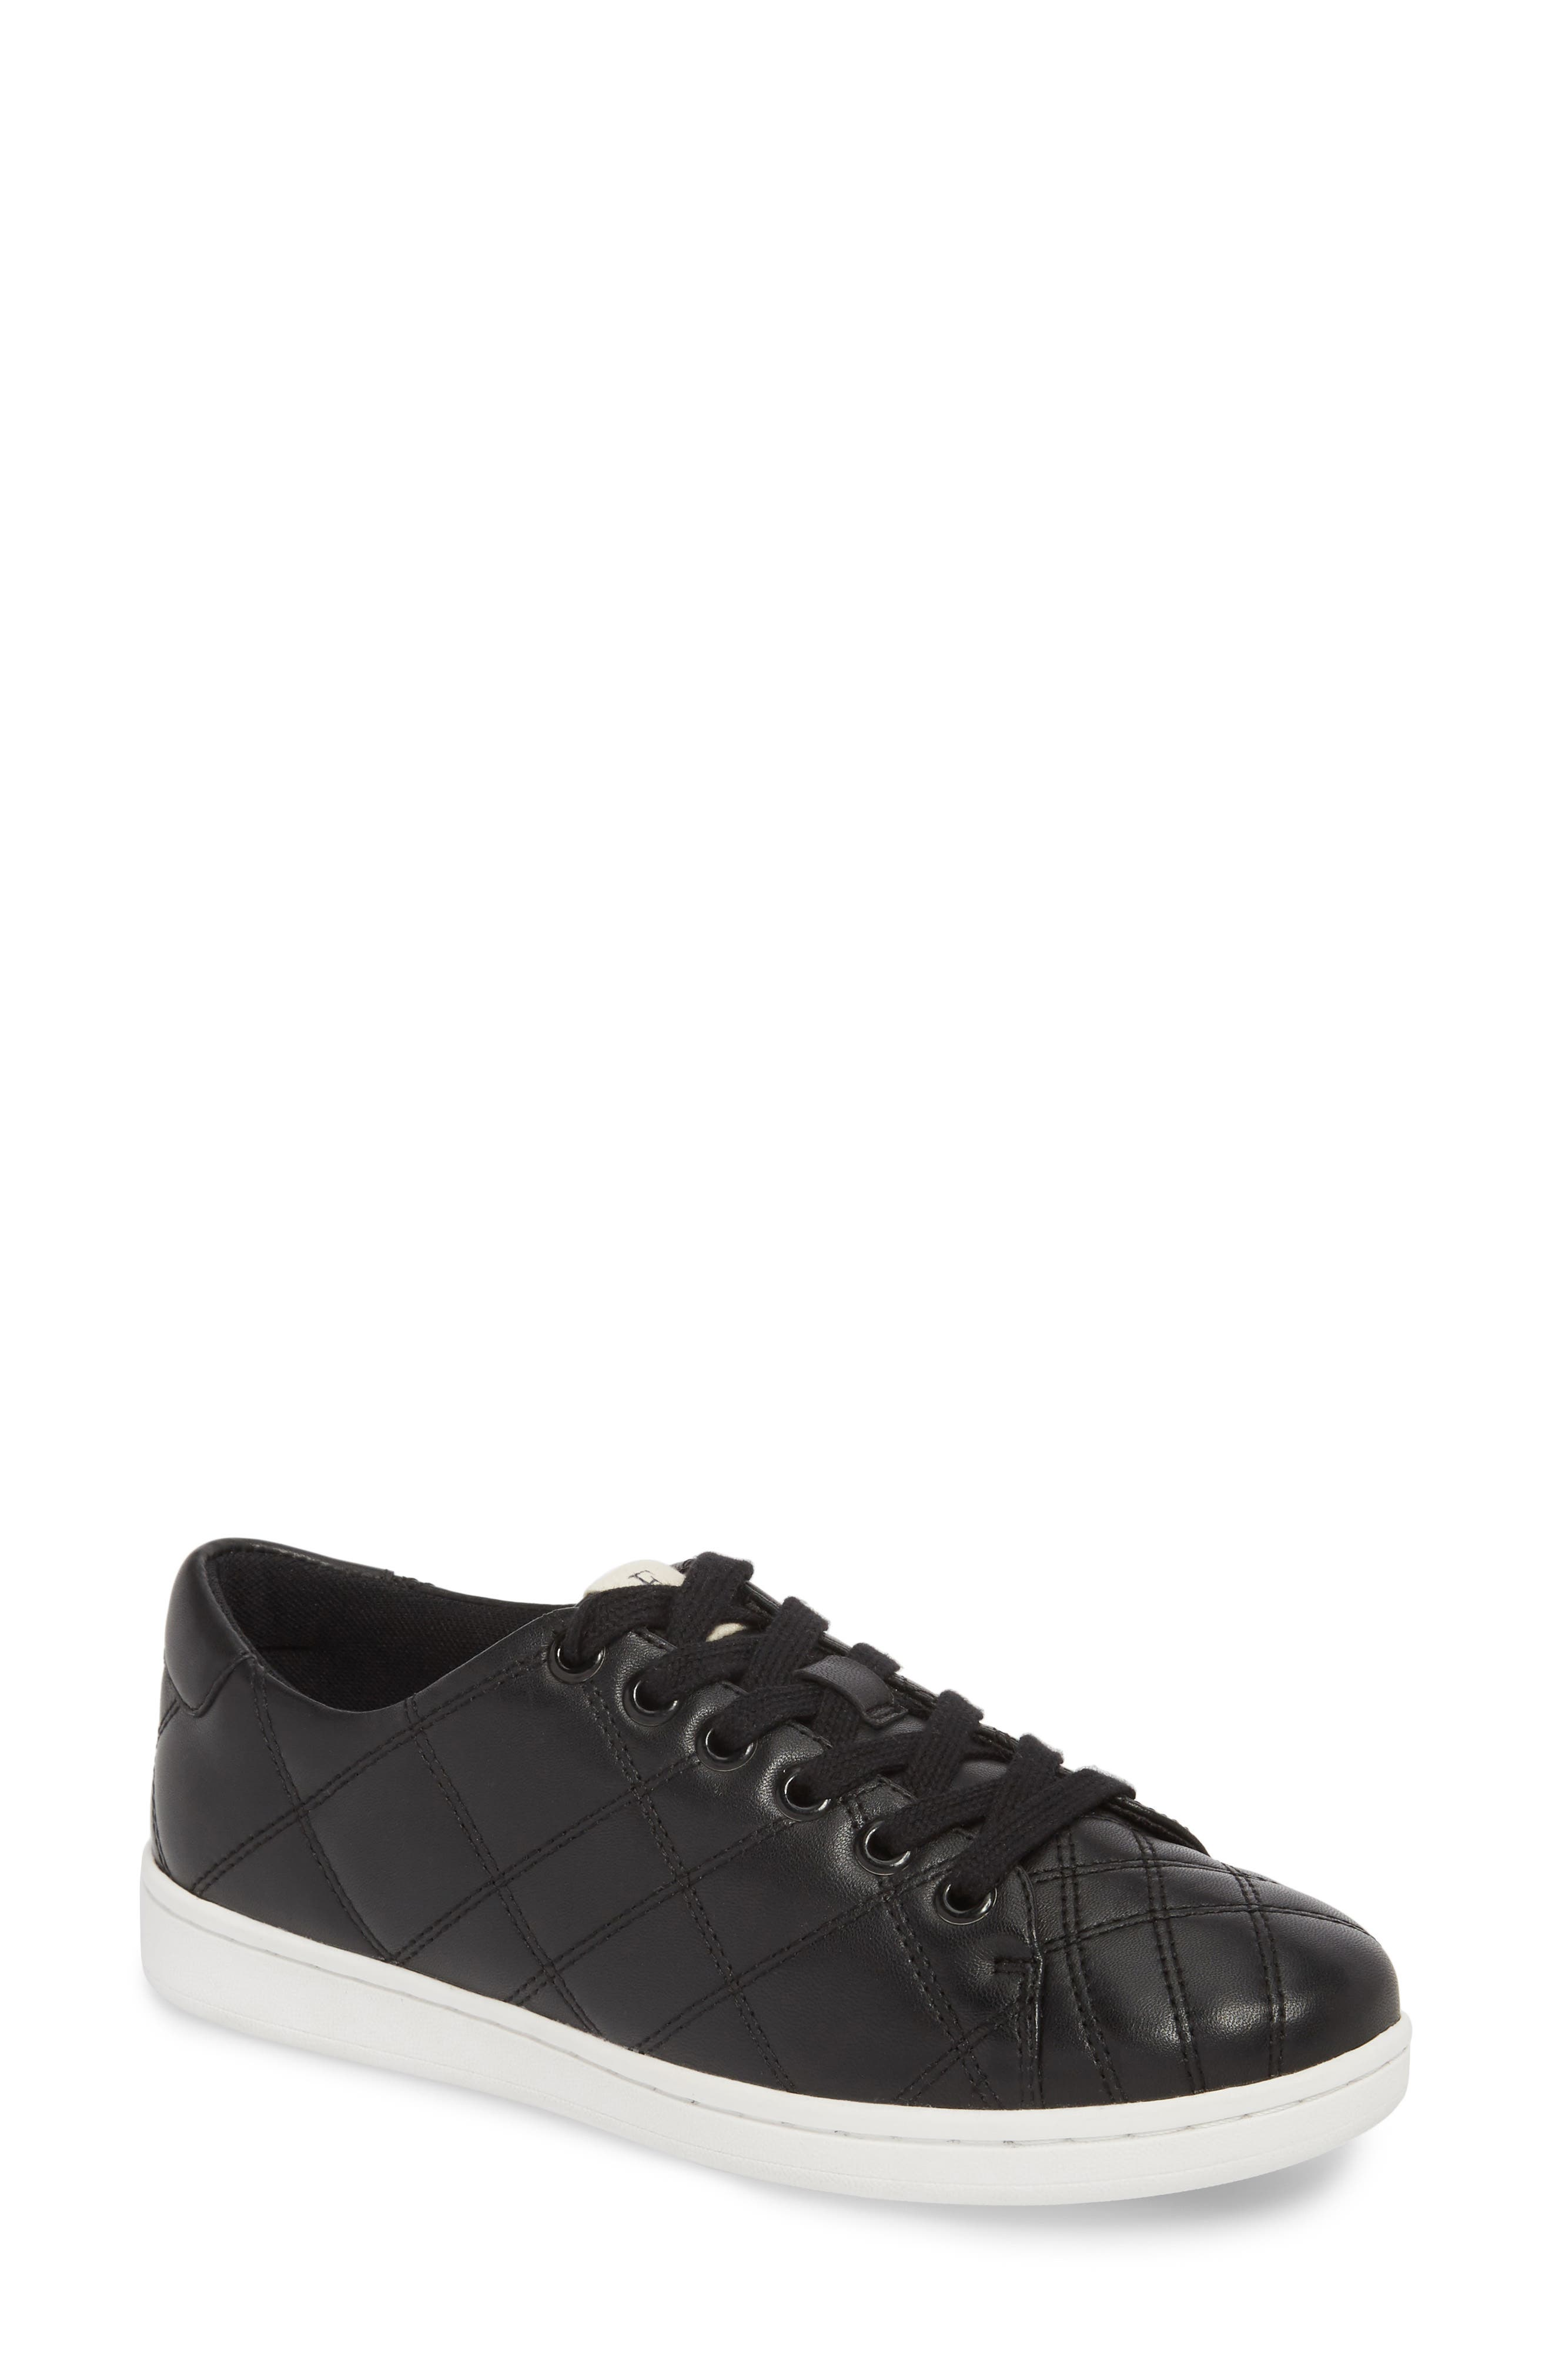 Crowley Quilted Sneaker,                         Main,                         color, BLACK LEATHER